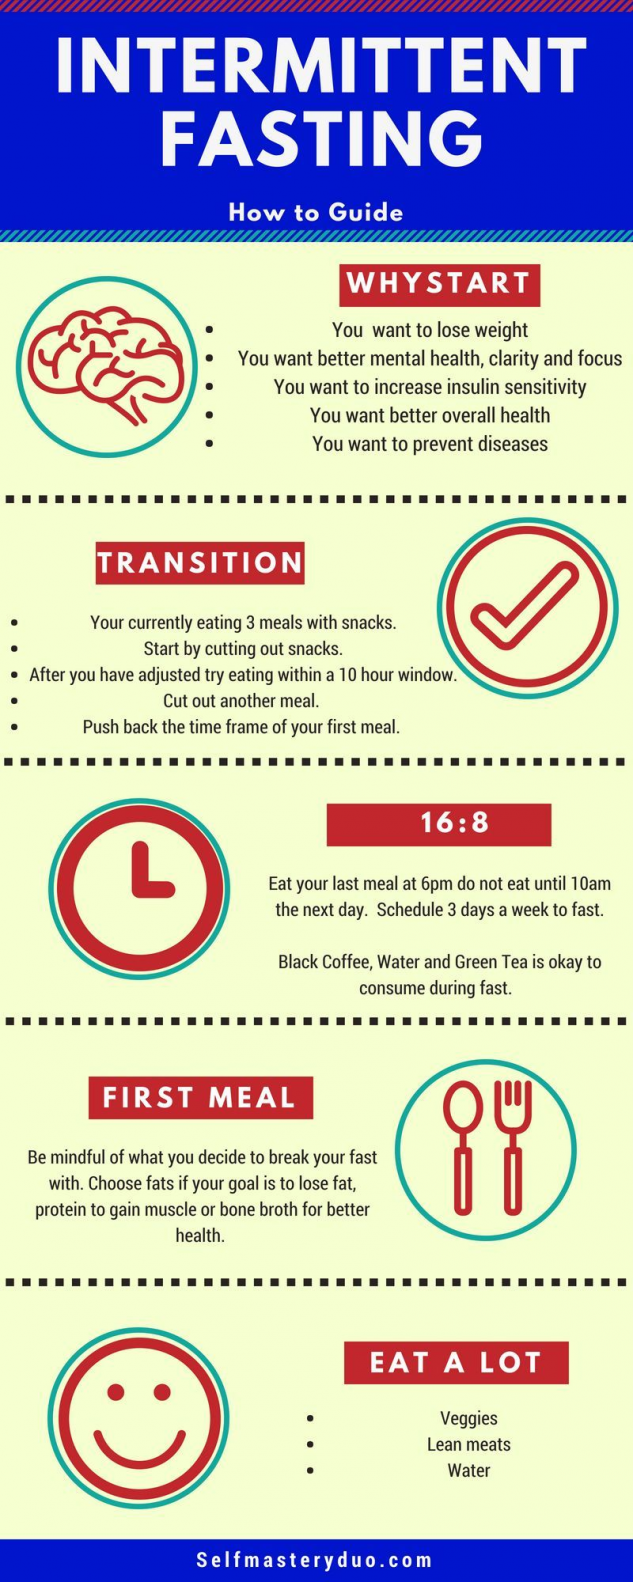 Intermittent fasting does not regulate what foods you can